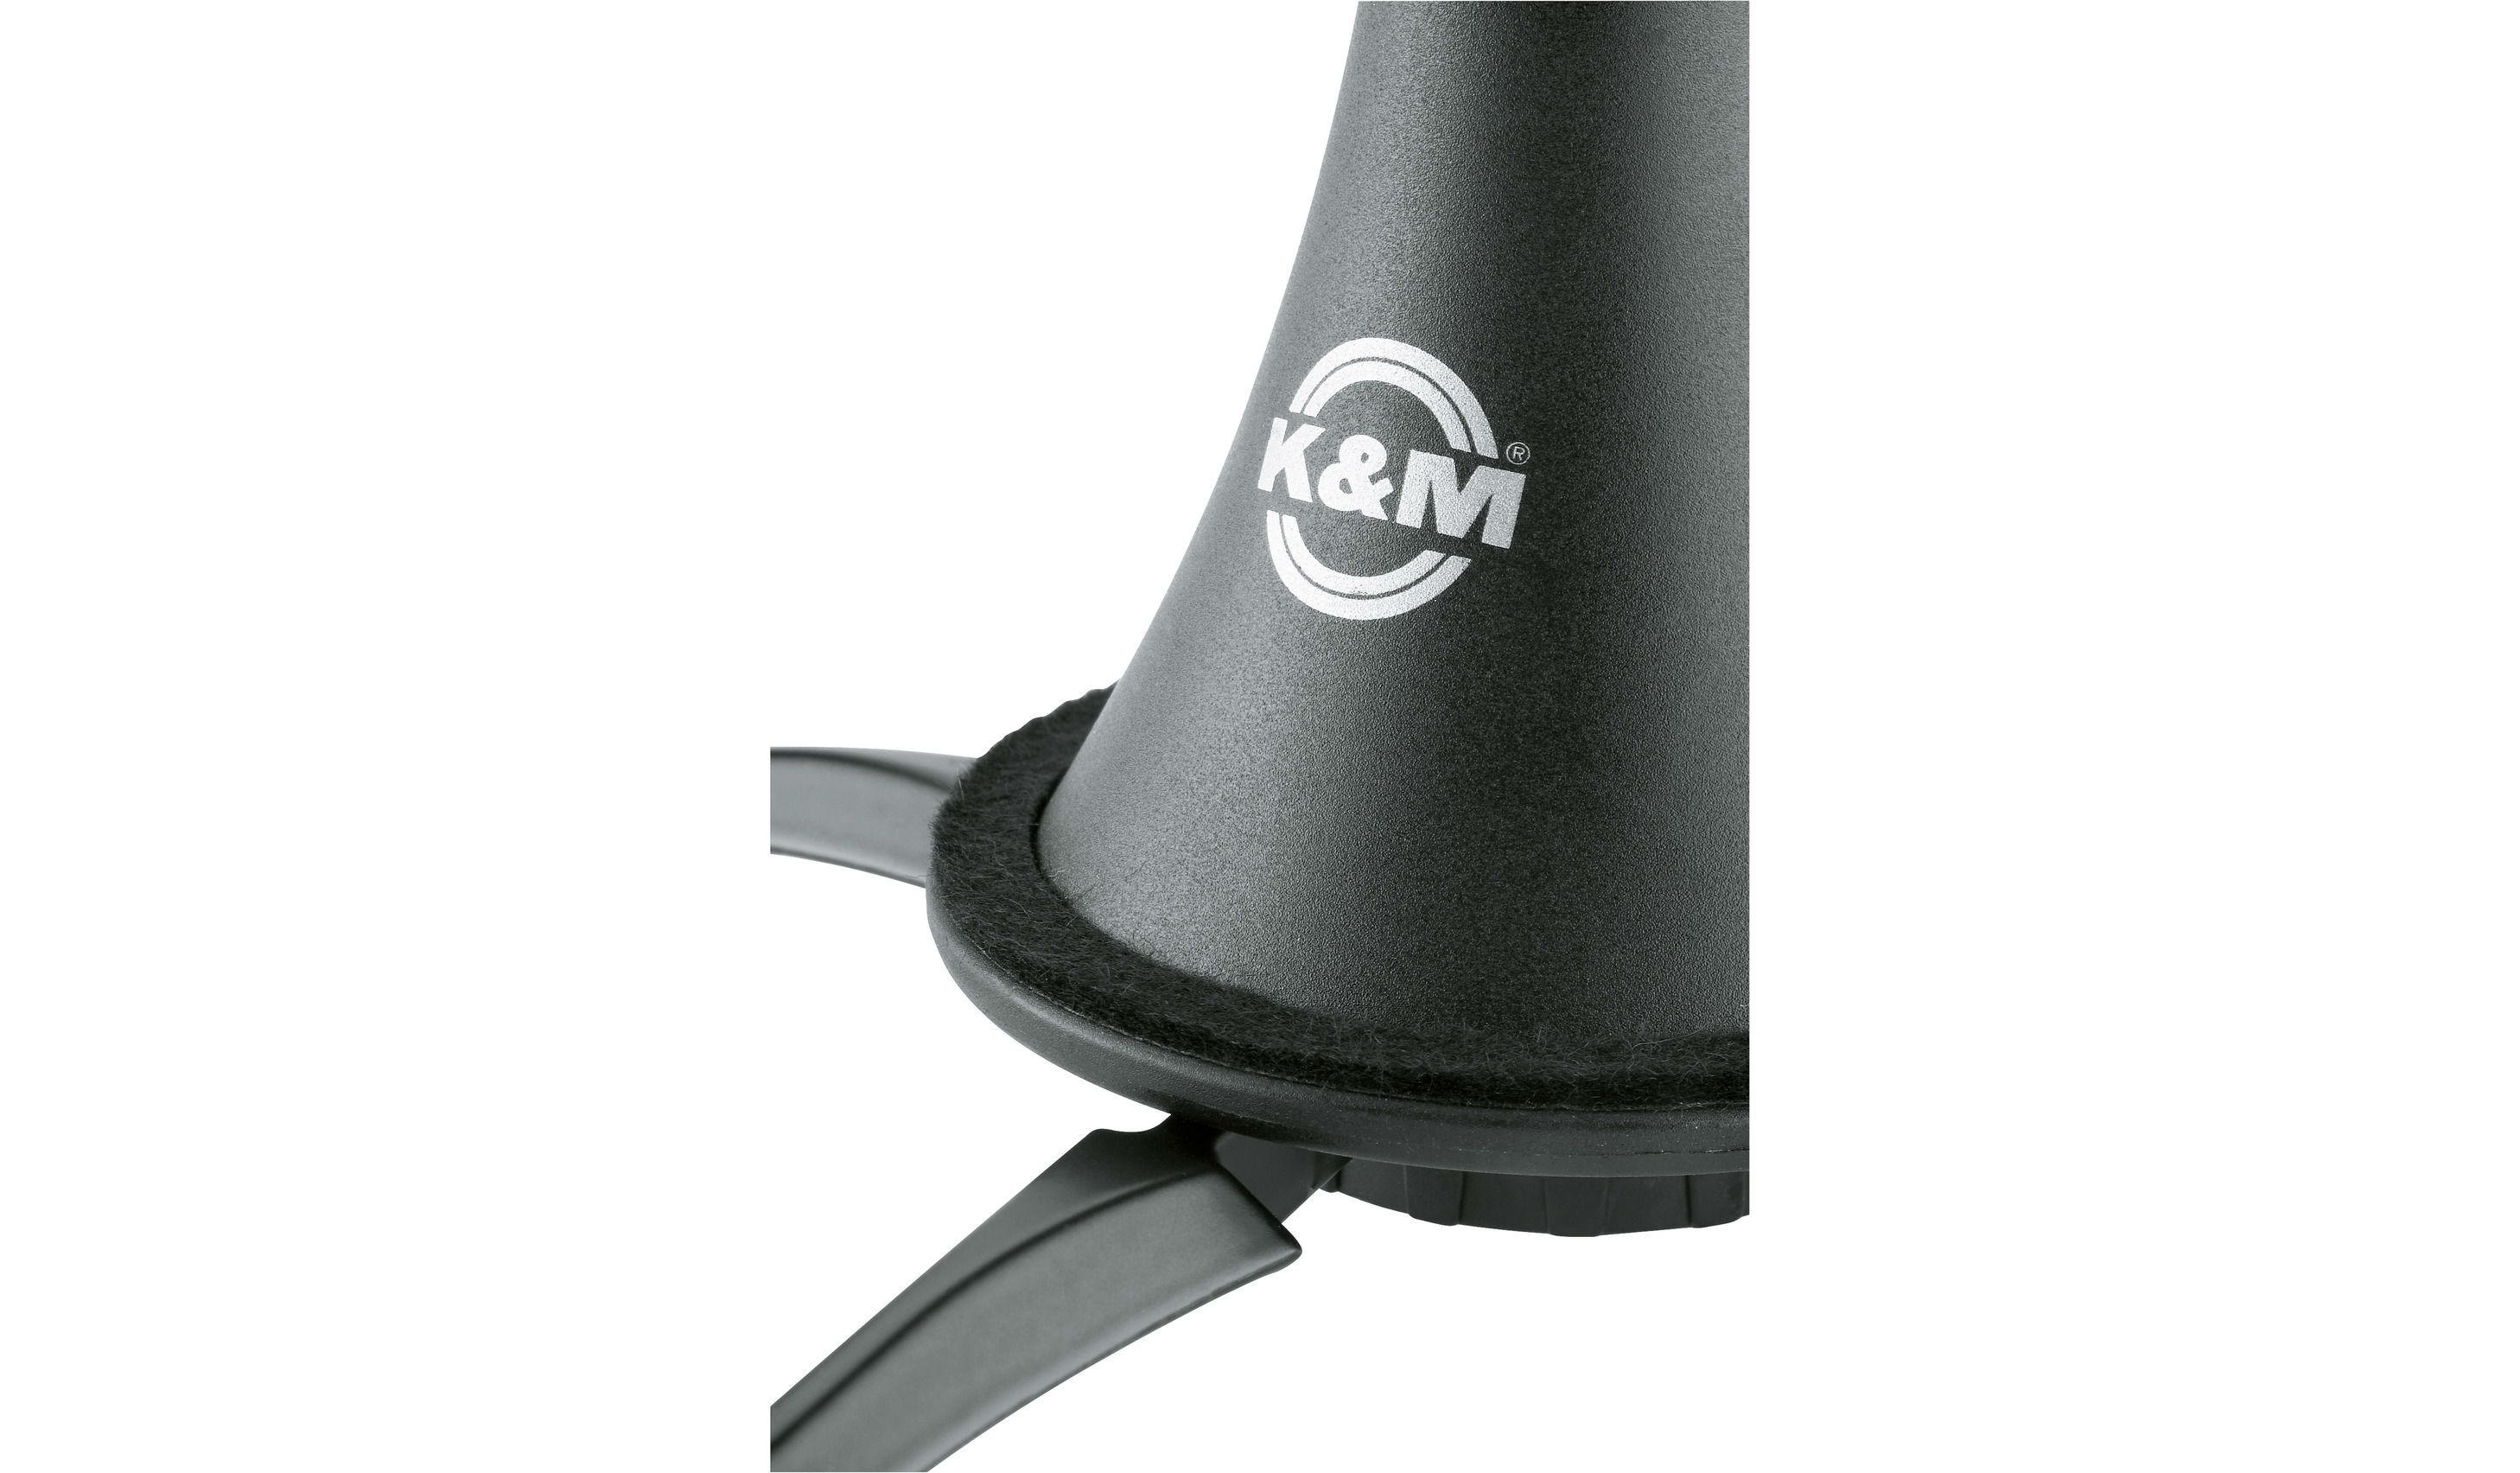 K&M 15225 Clarinet Holder Black